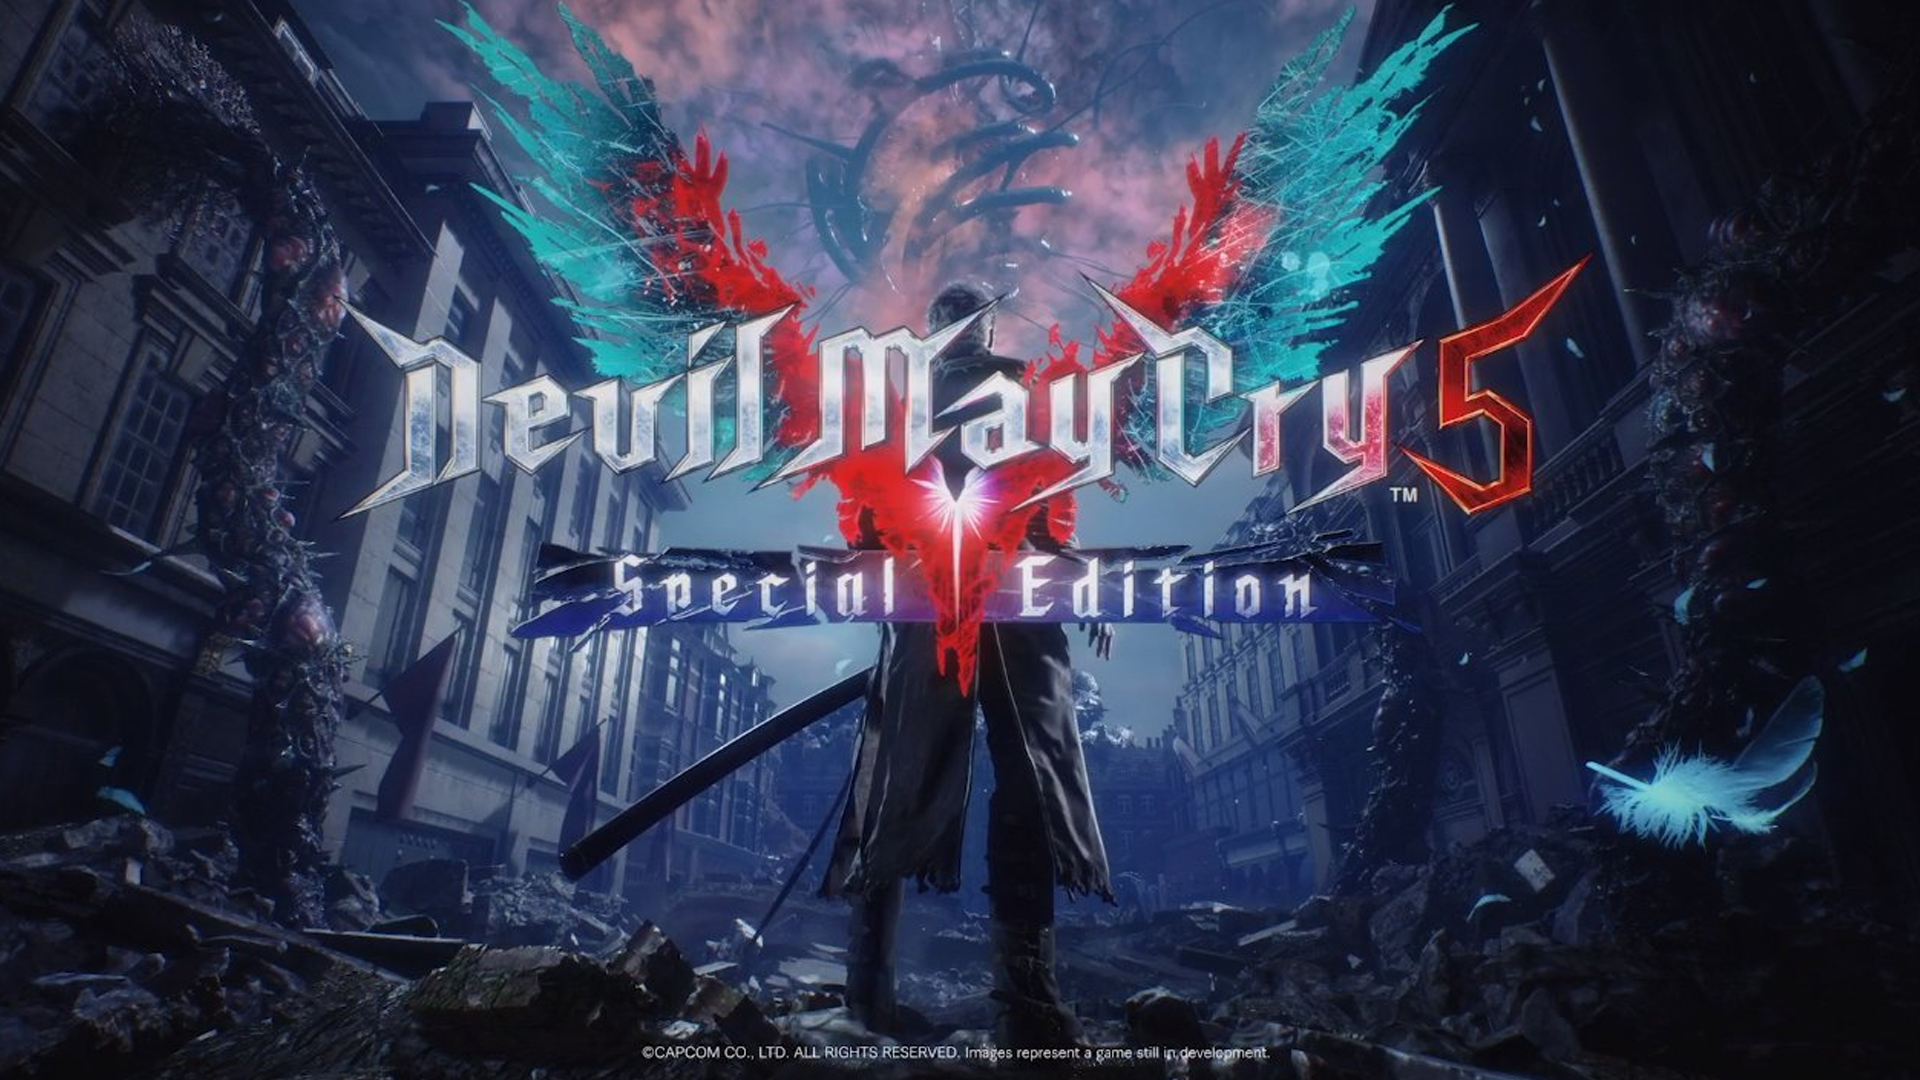 Devil May Cry 5 Special Edition Coming To Next-Gen